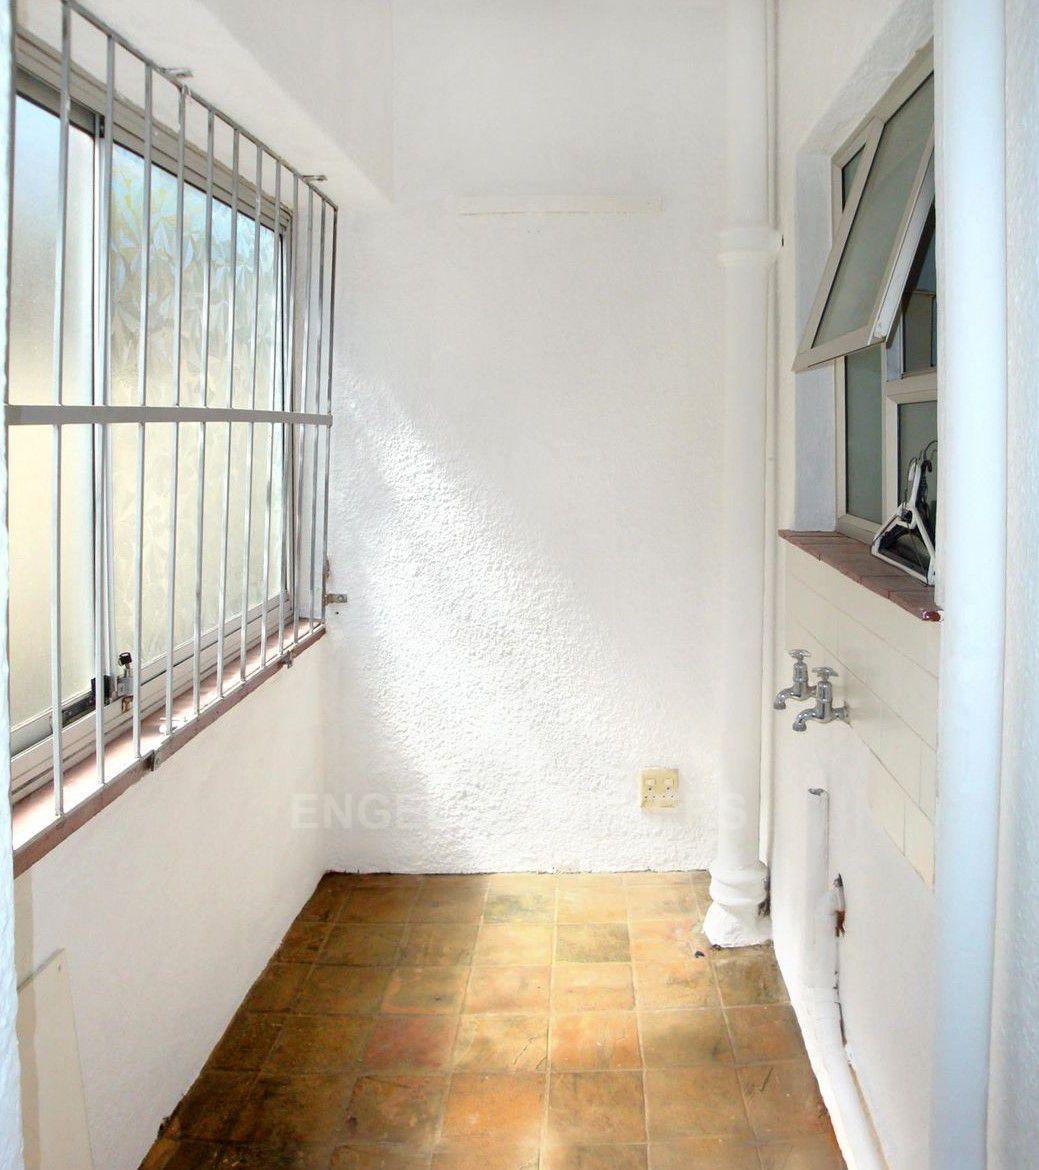 Strand South property for sale. Ref No: 13663205. Picture no 12